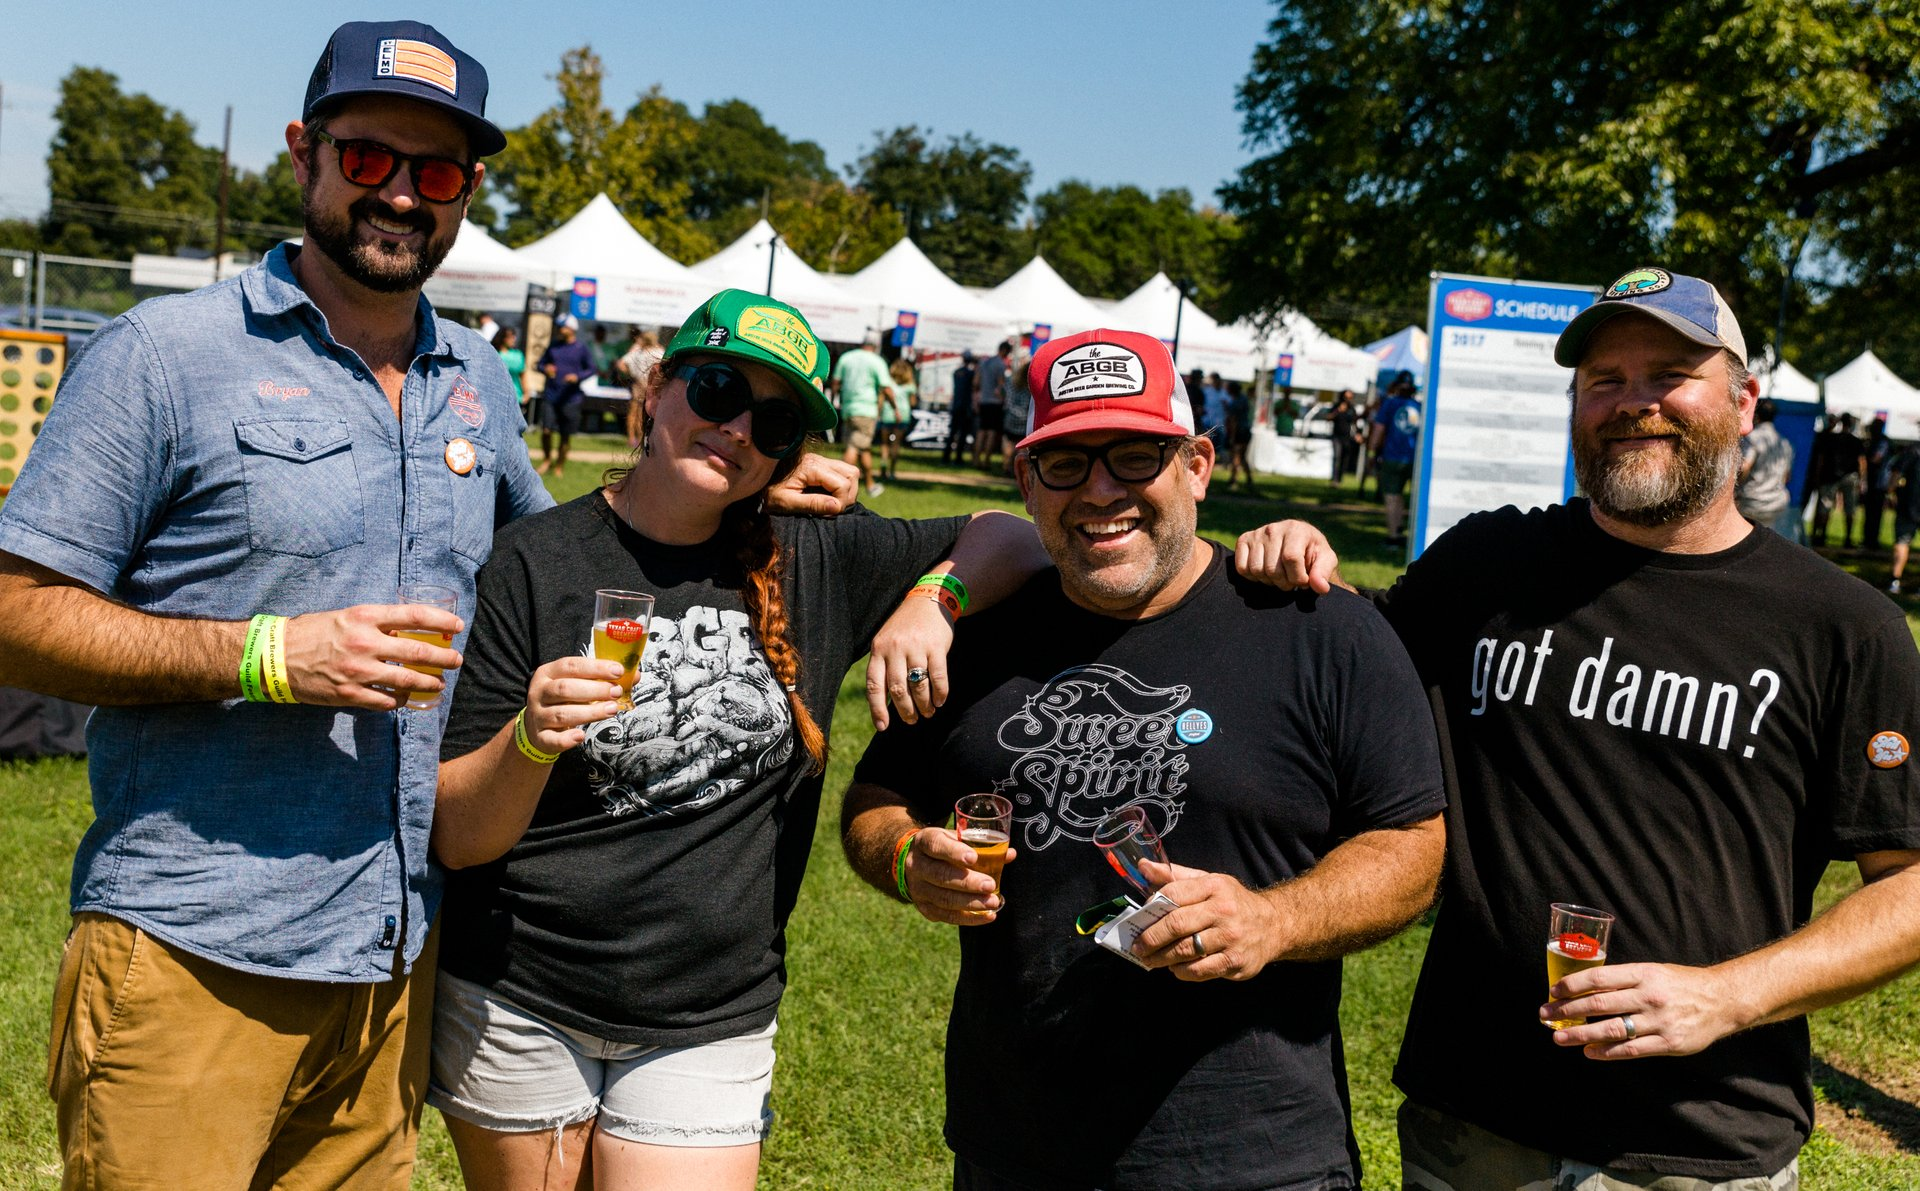 Best time to see Texas Craft Brewers Festival in Texas